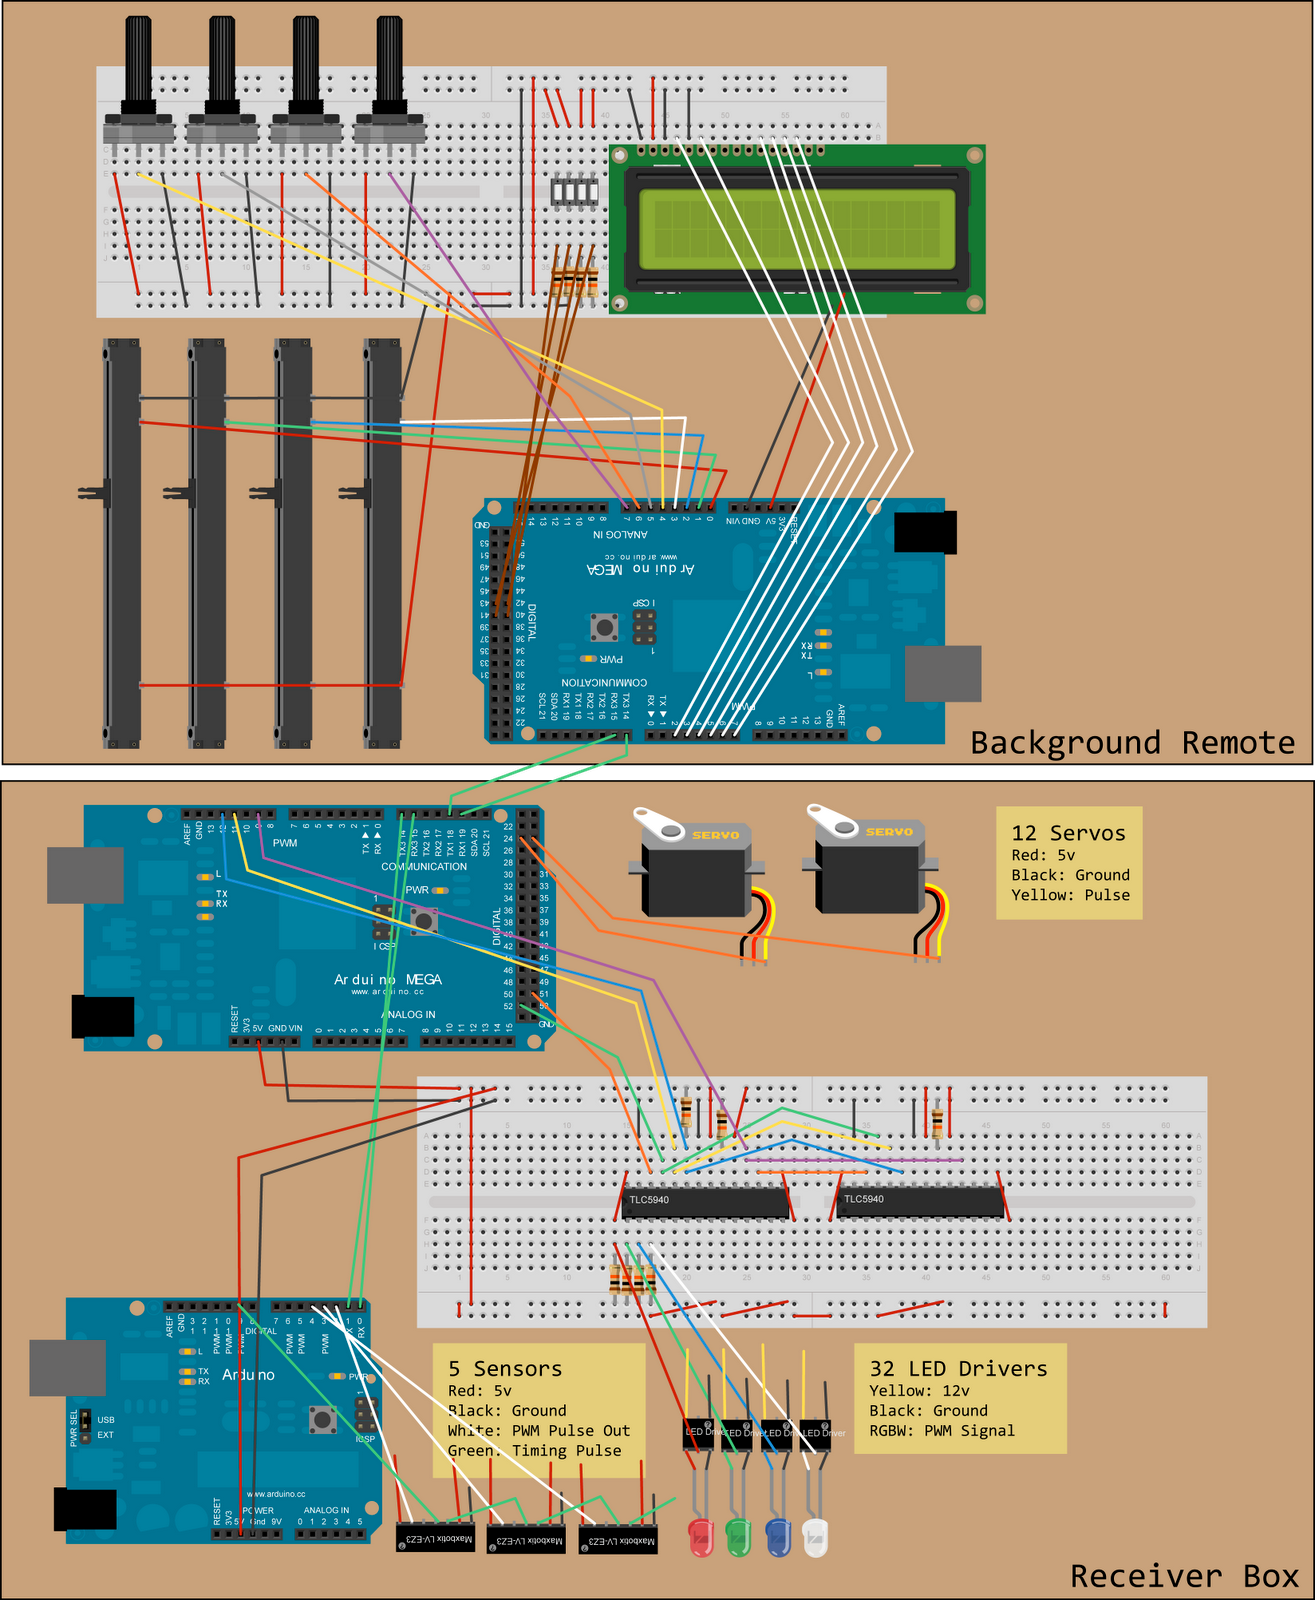 medium resolution of this is rough diagram of how the the electronics behind the wall are wired together